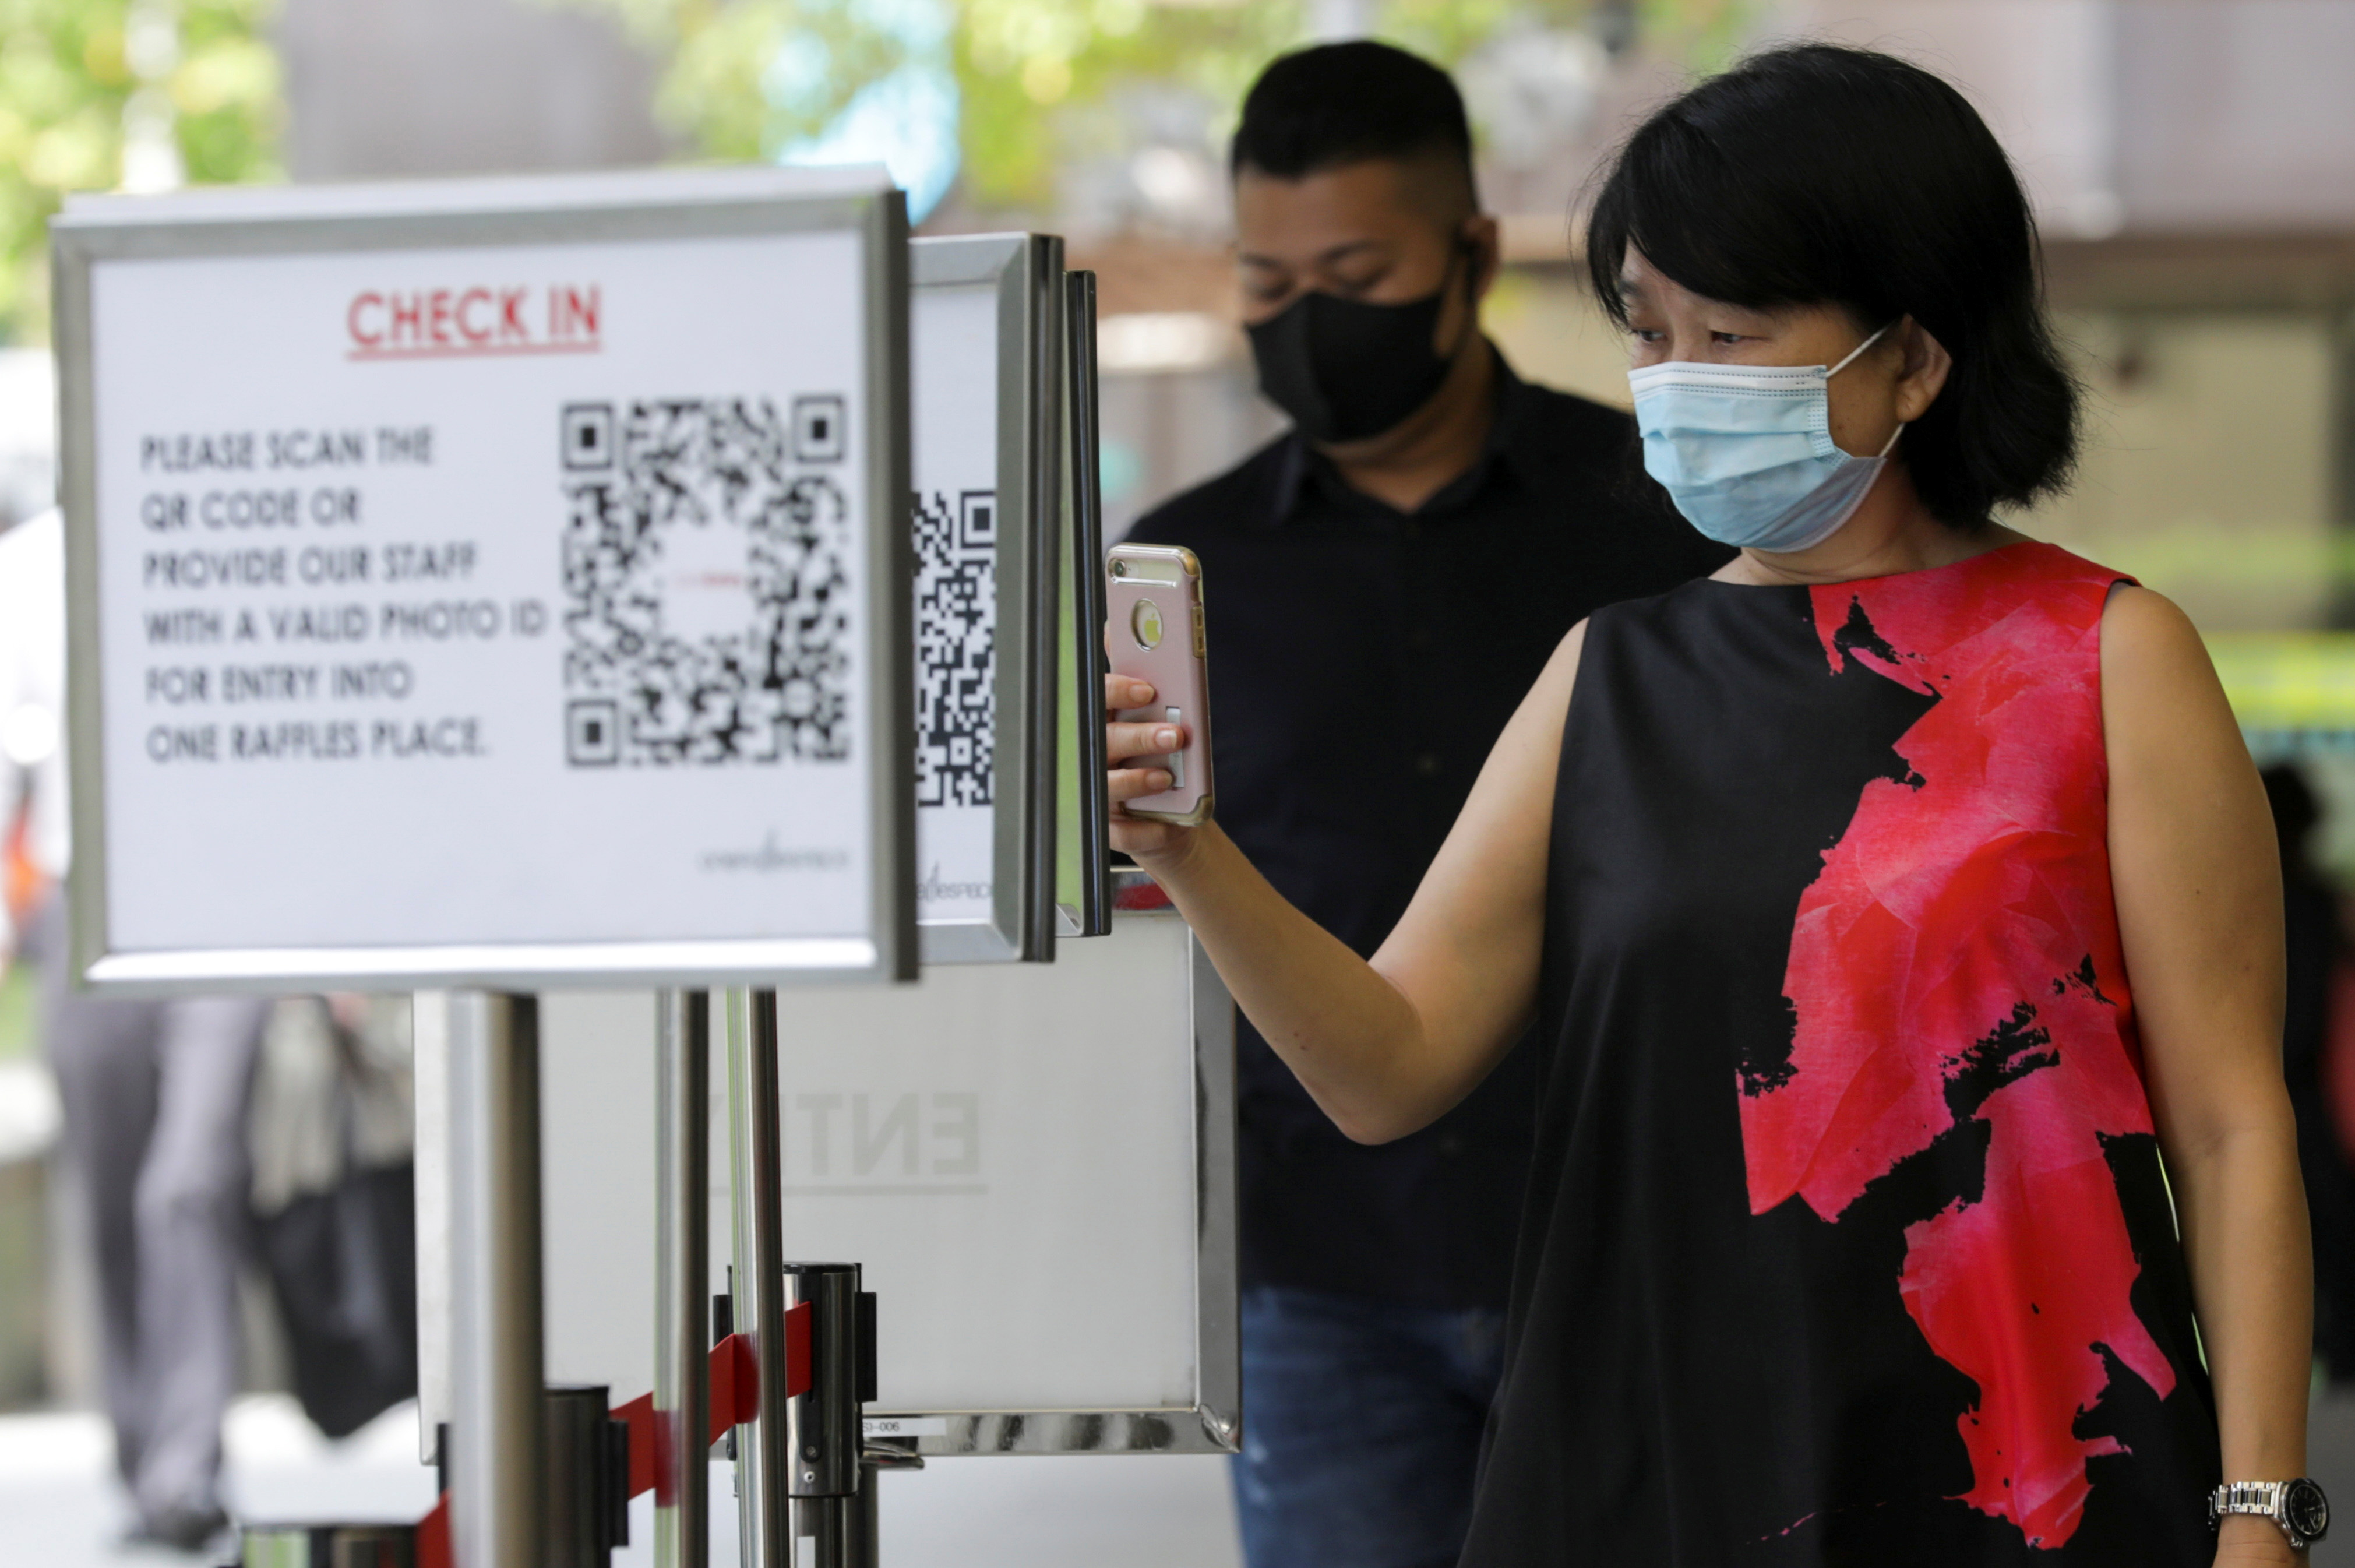 In total, there are 9 new cases of COVID-19 infection in Singapore today, the lowest daily number of new cases in almost three months. Photo courtesy: Reuters